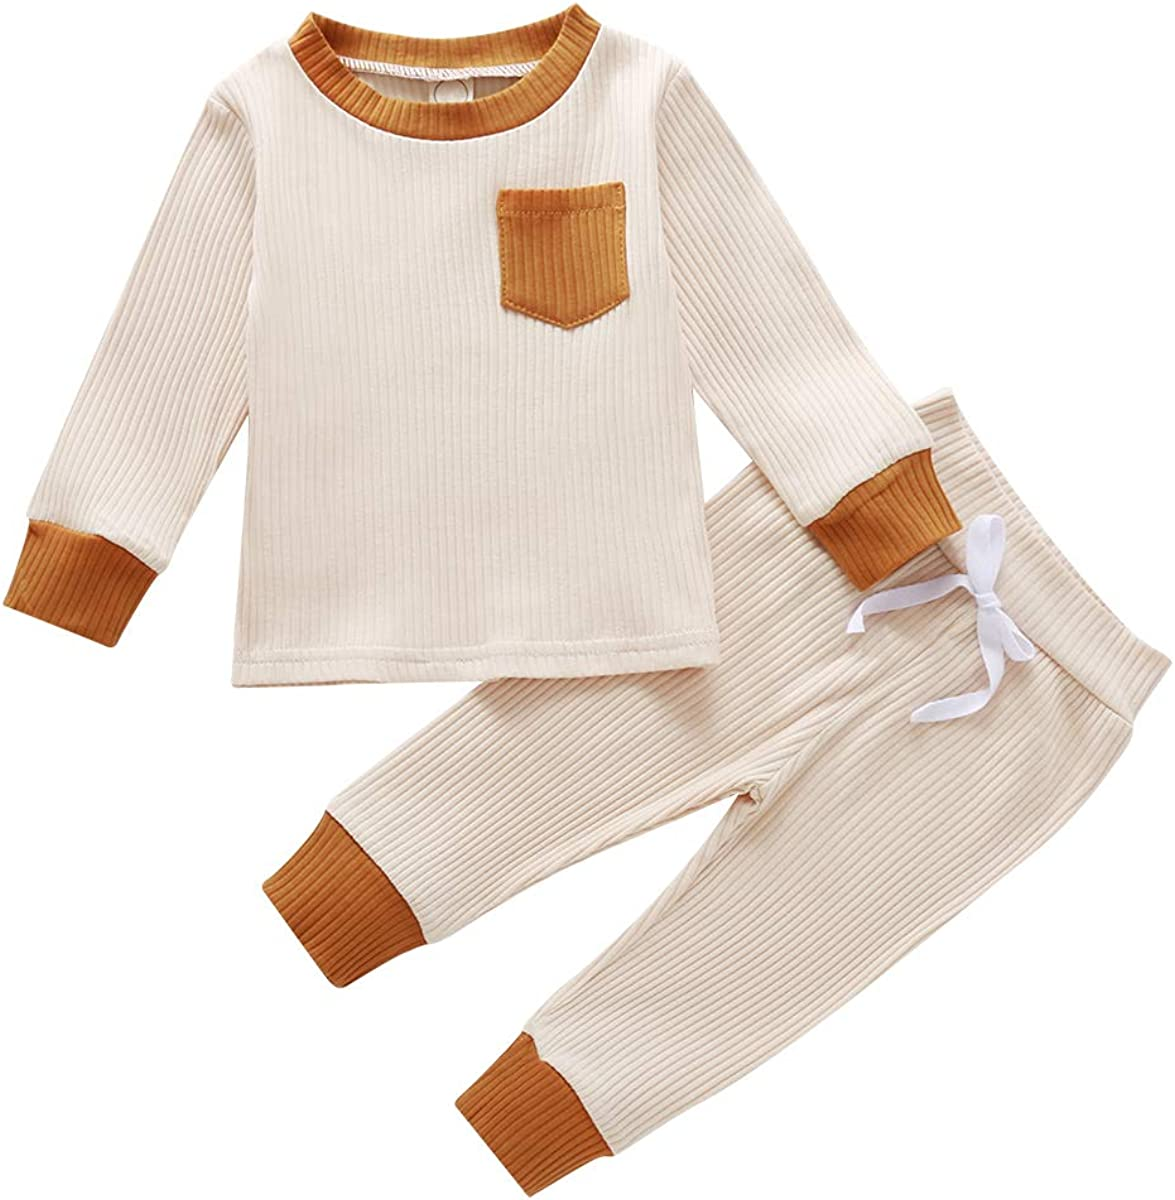 Voydsunflower Baby Girls Boys 2 Pieces Pants Set Solid Knitted Long Sleeve Tops Sweatshirt /& Pants Pajamas Set Outfits